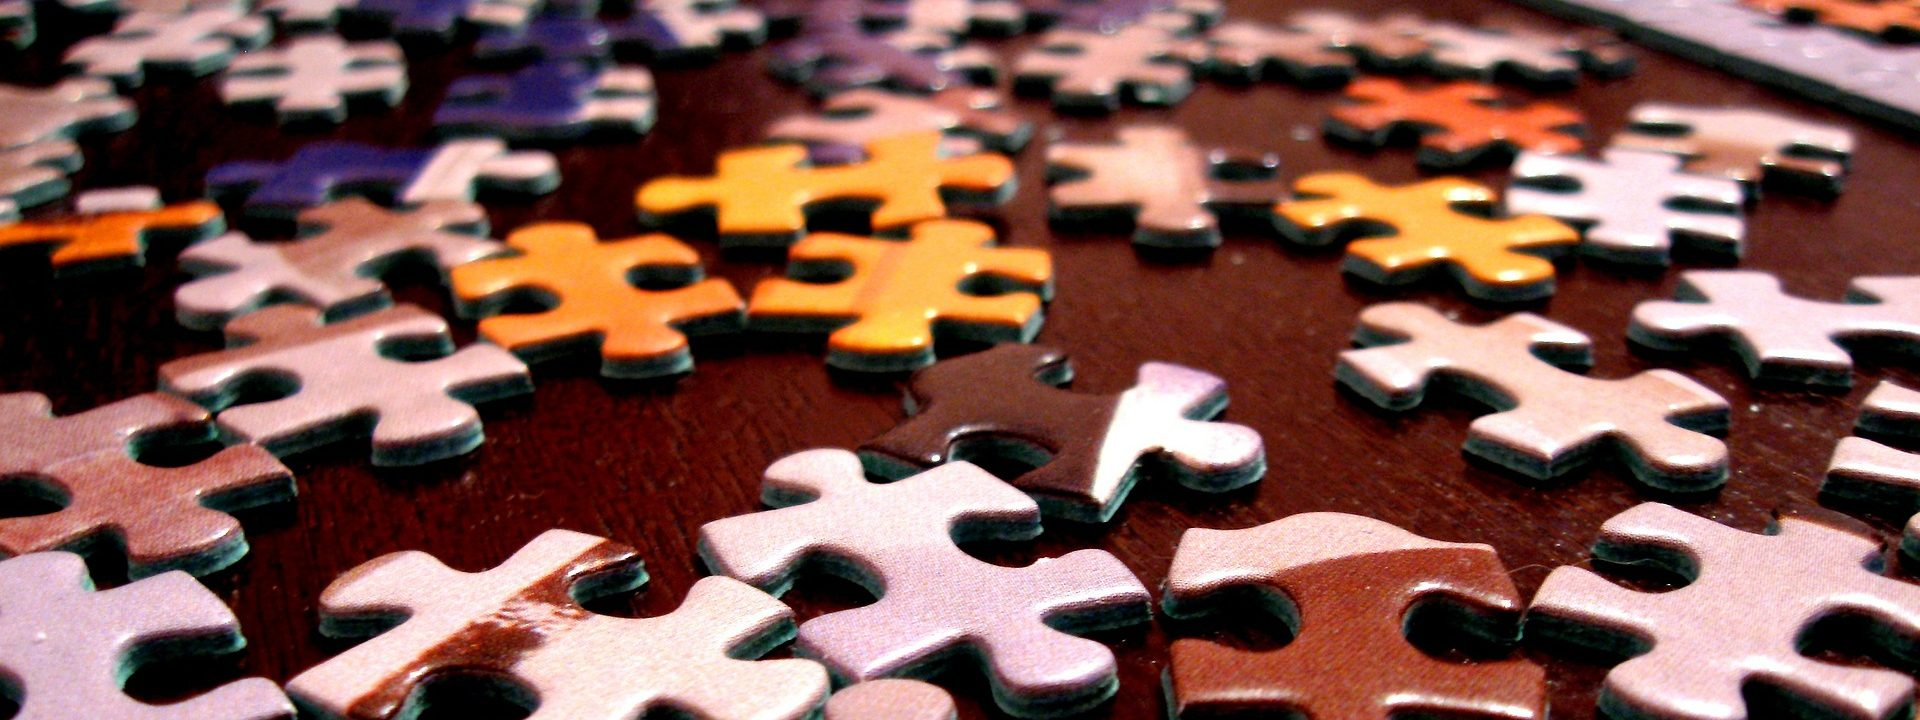 An image link of jigsaw pieces - click here for problem-solving resources